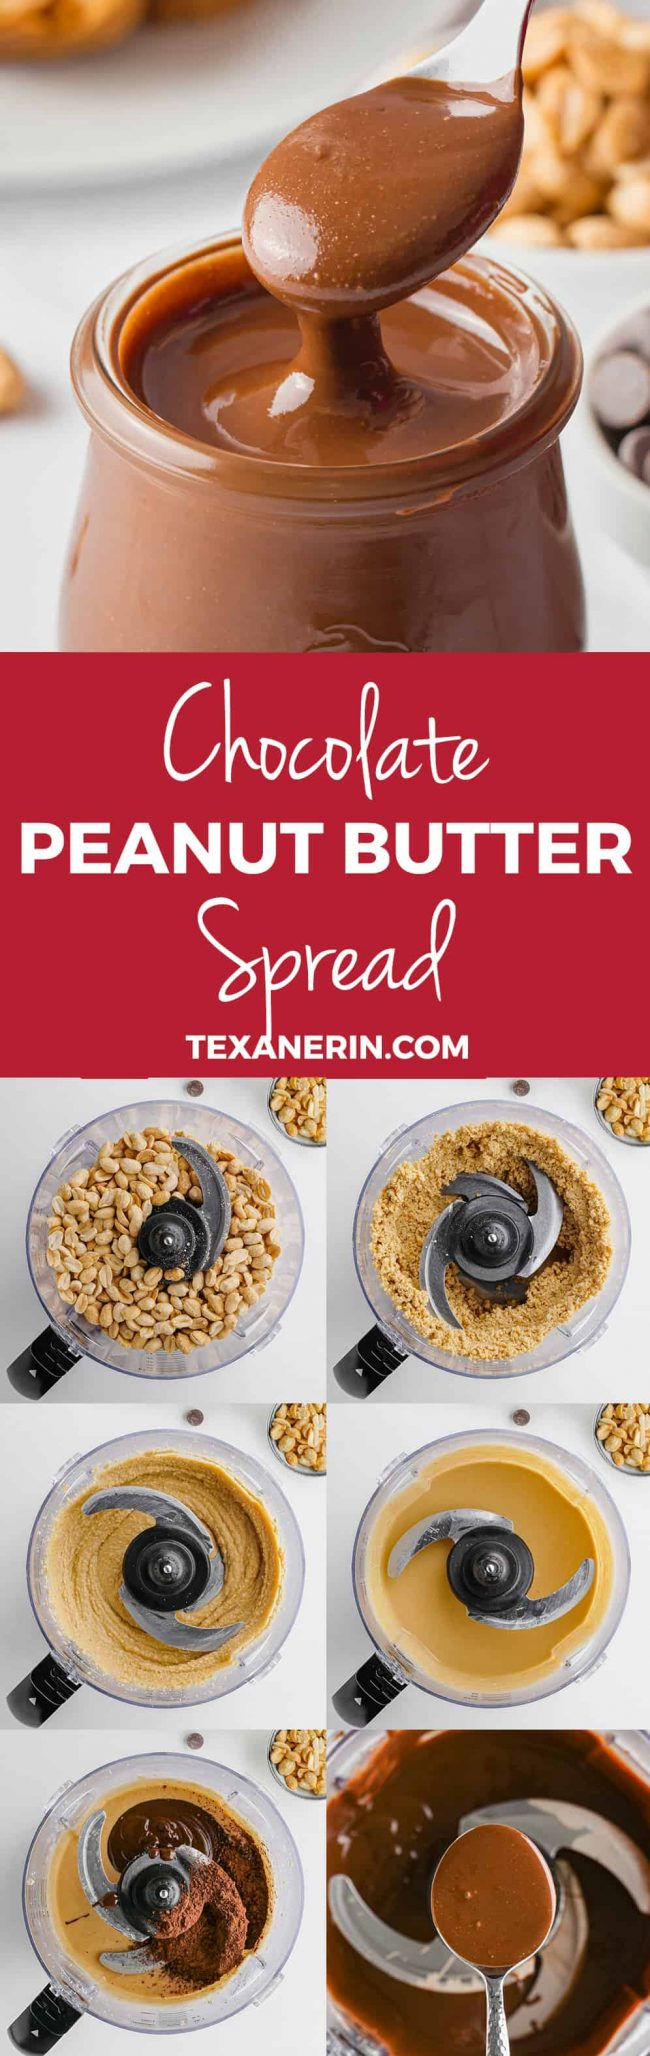 This chocolate peanut butter spread only requires a few ingredients and takes just minutes to make! Naturally gluten-free, vegan and dairy-free.